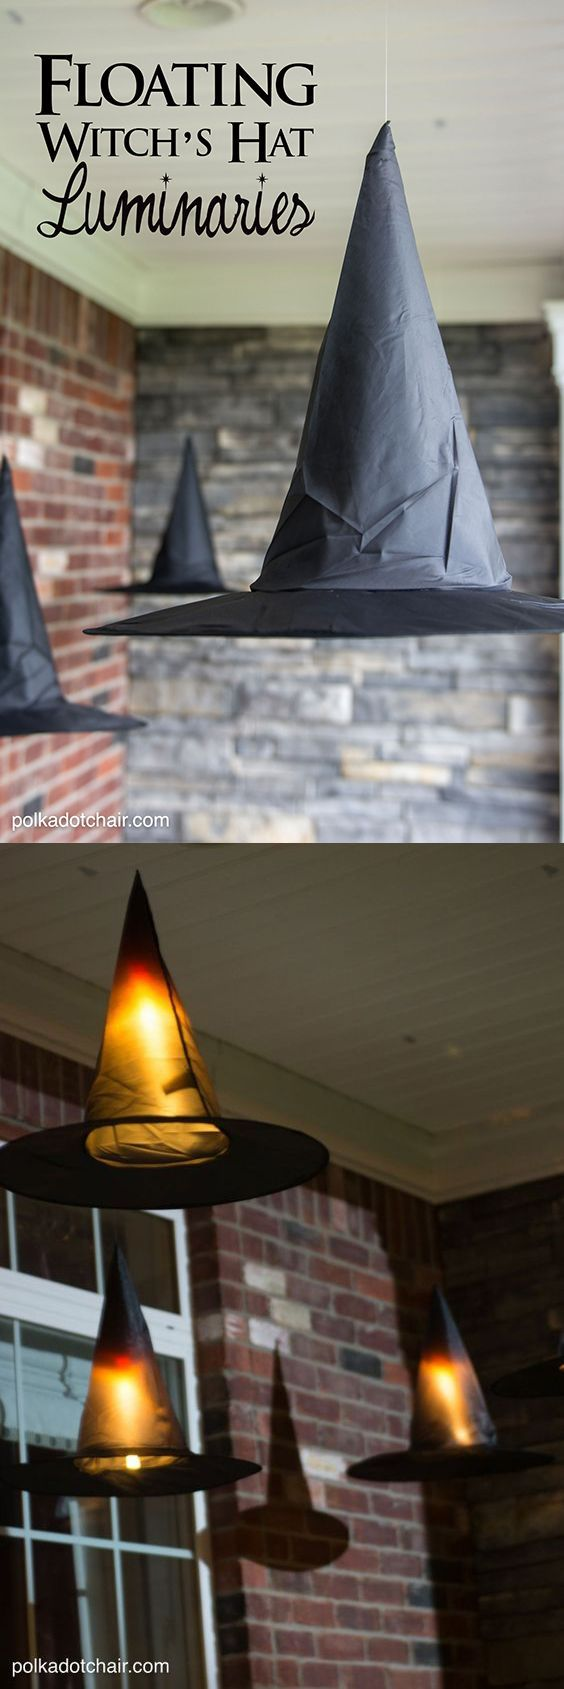 diy floating witch hat luminaries party decoration ideasparties decorationshalloween - Halloween Decorations For A Party